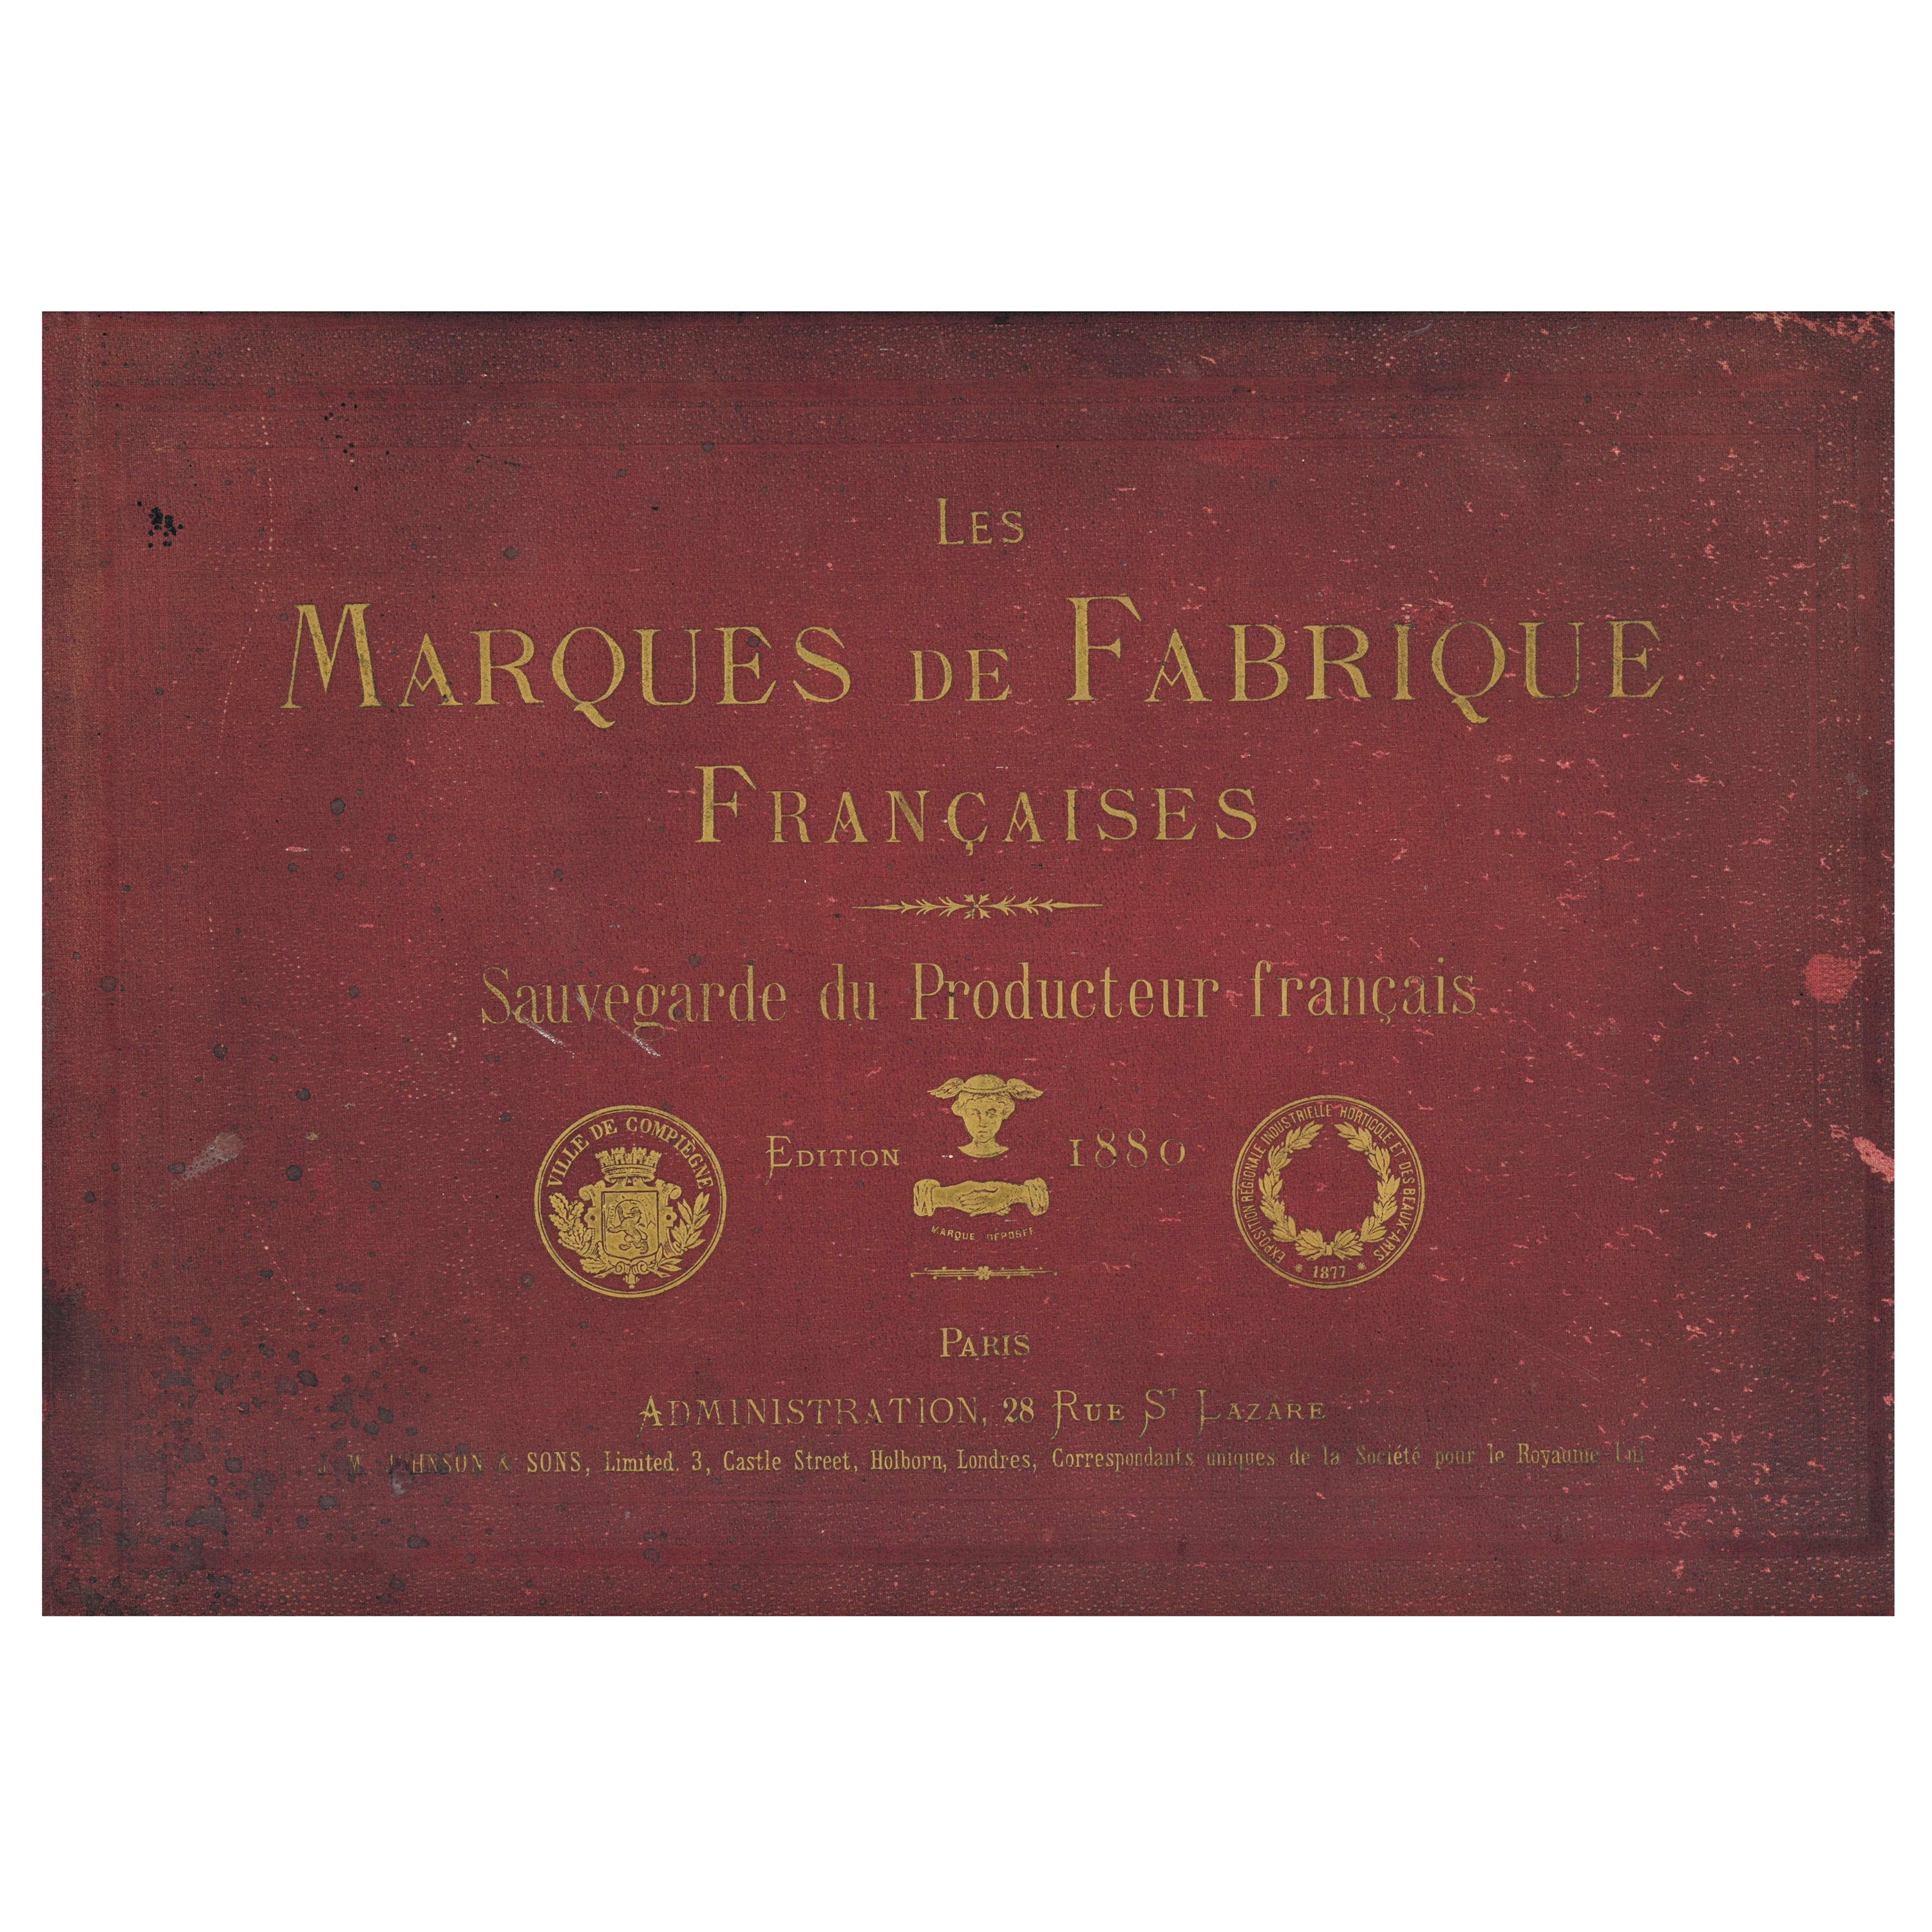 Les Marques de Fabrique Francaises, Book of French Product Labels from 1880